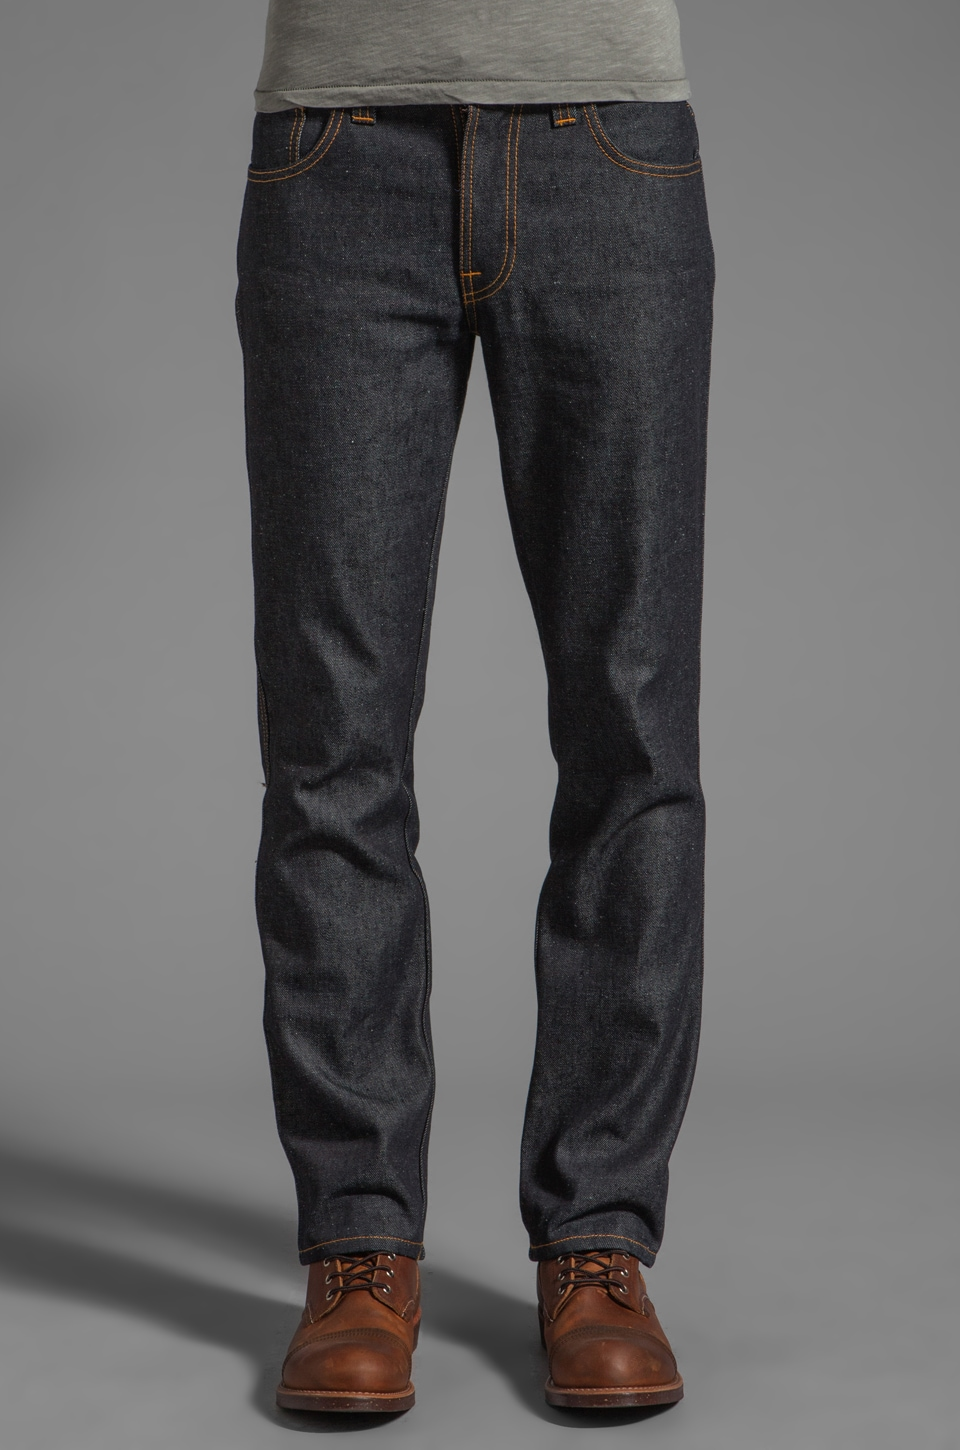 Nudie Jeans Slim Jim in Org. Dry Deep Indigo